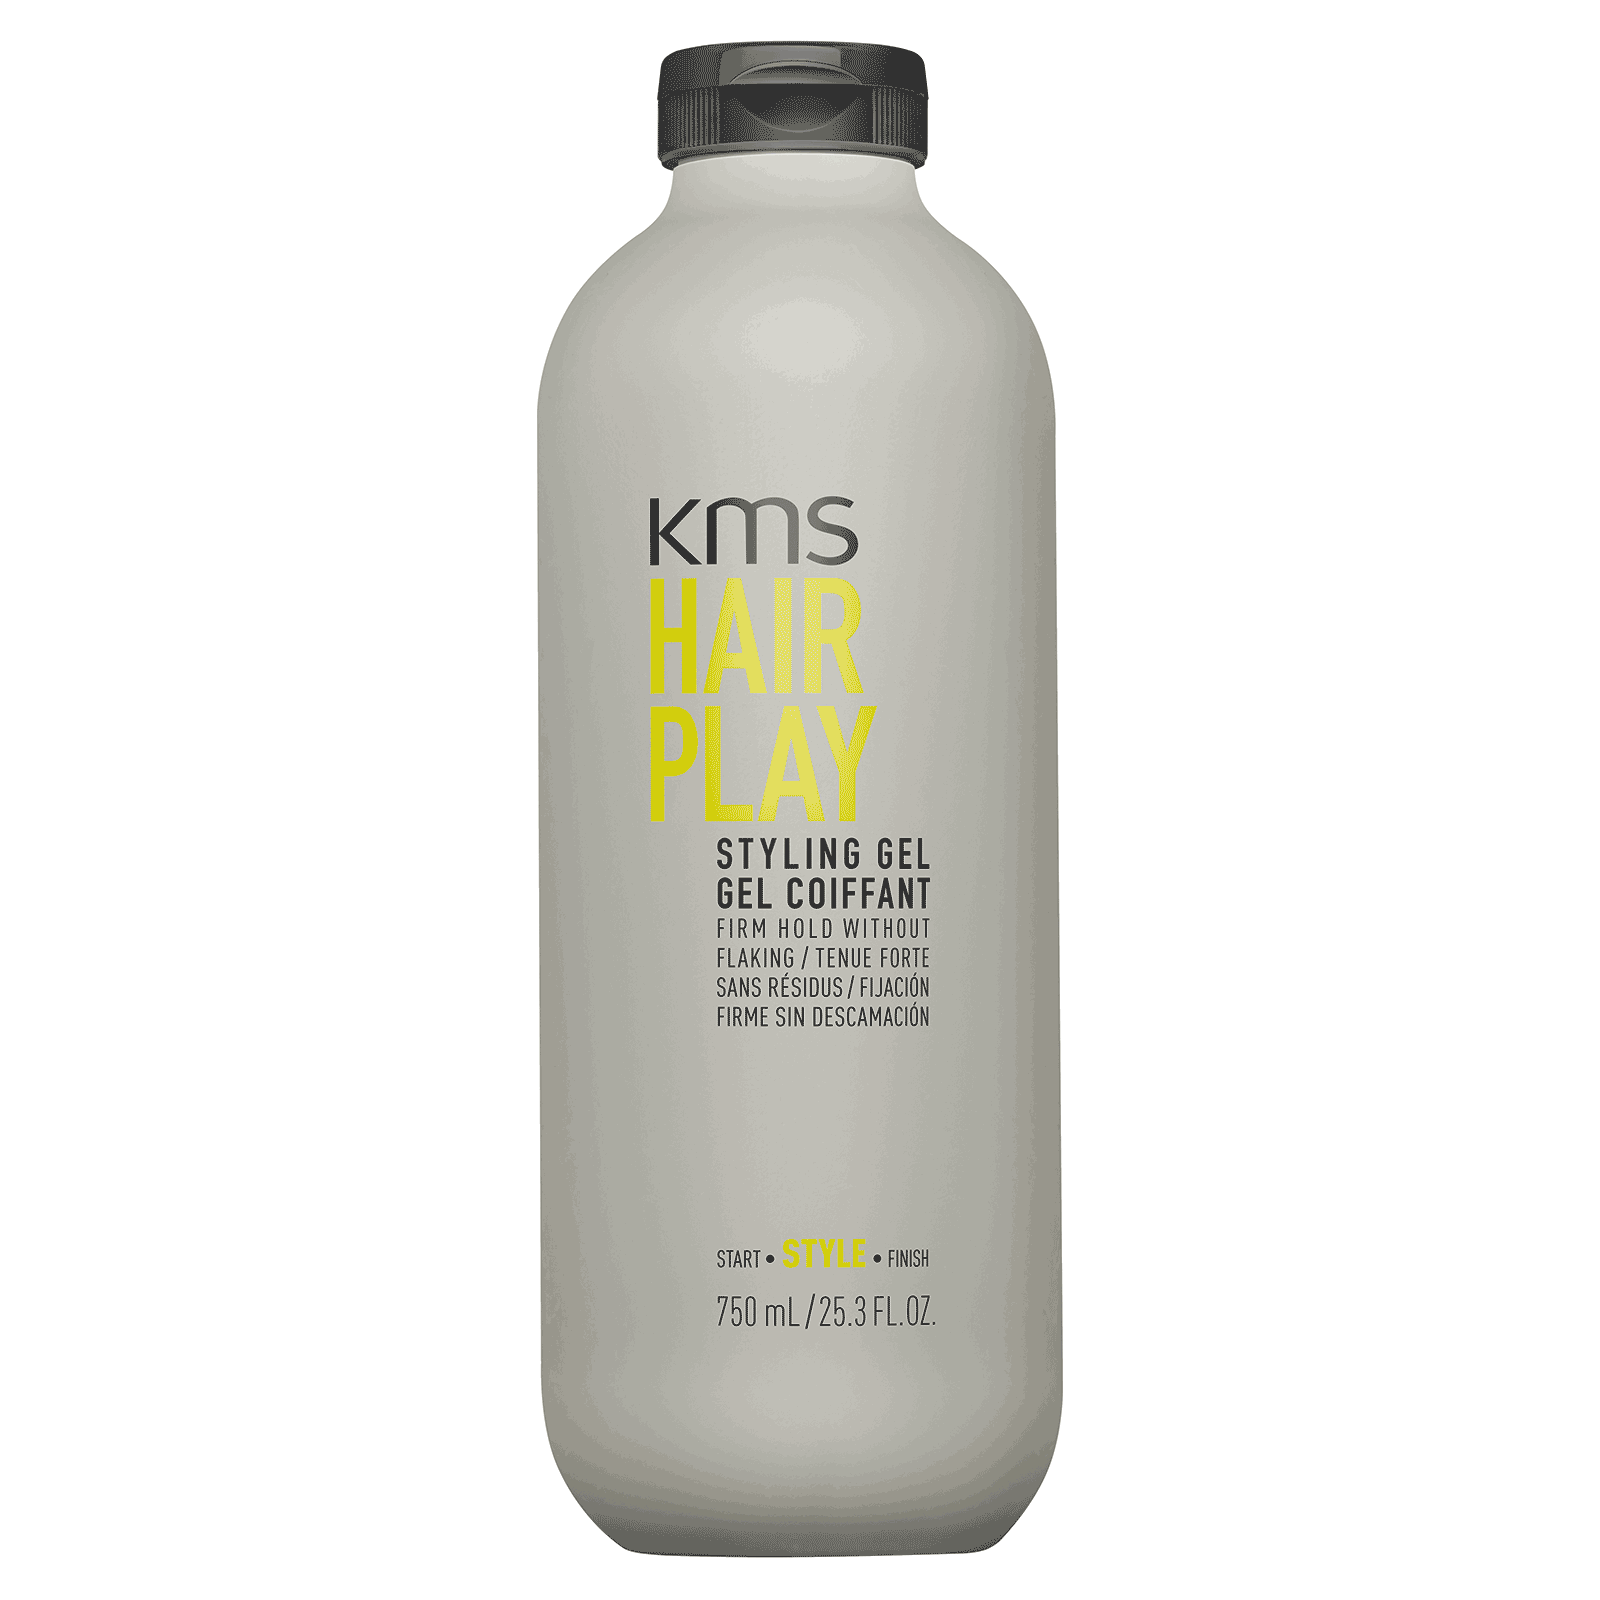 KMS Hair Play Styling Gel 25.3 fl oz / 750ml Firm Hold Witho